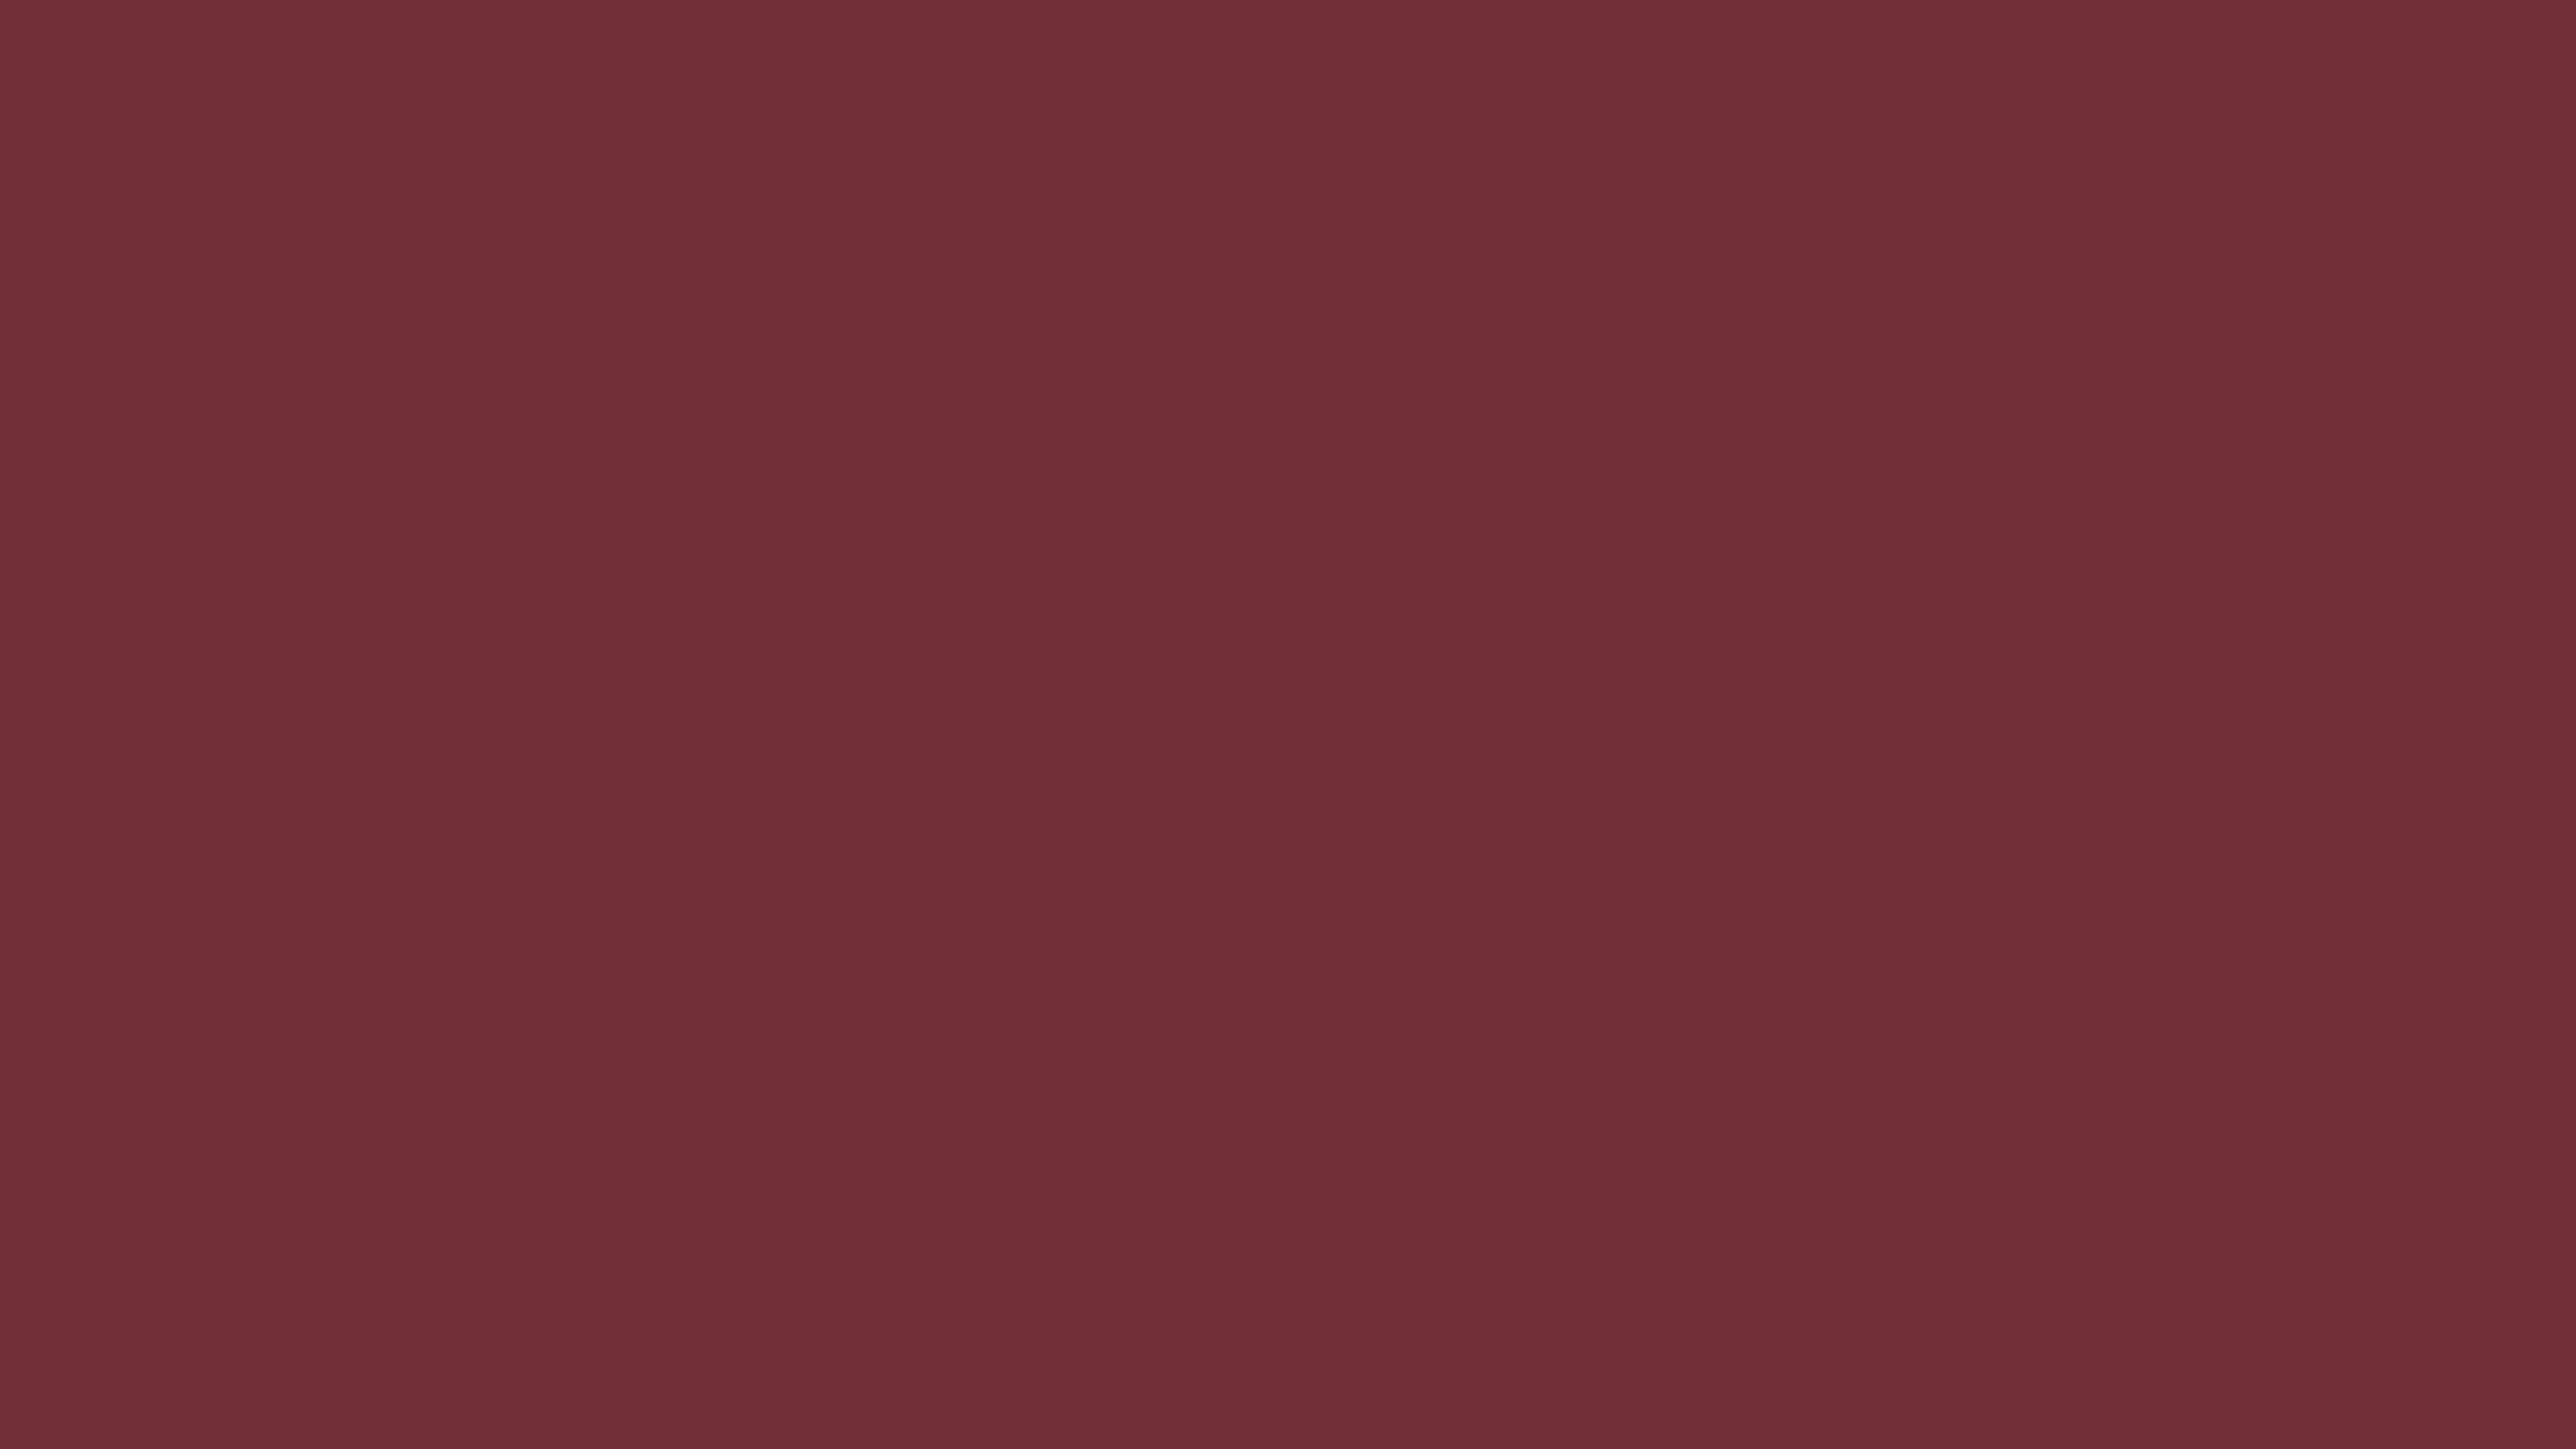 7680x4320 Wine Solid Color Background